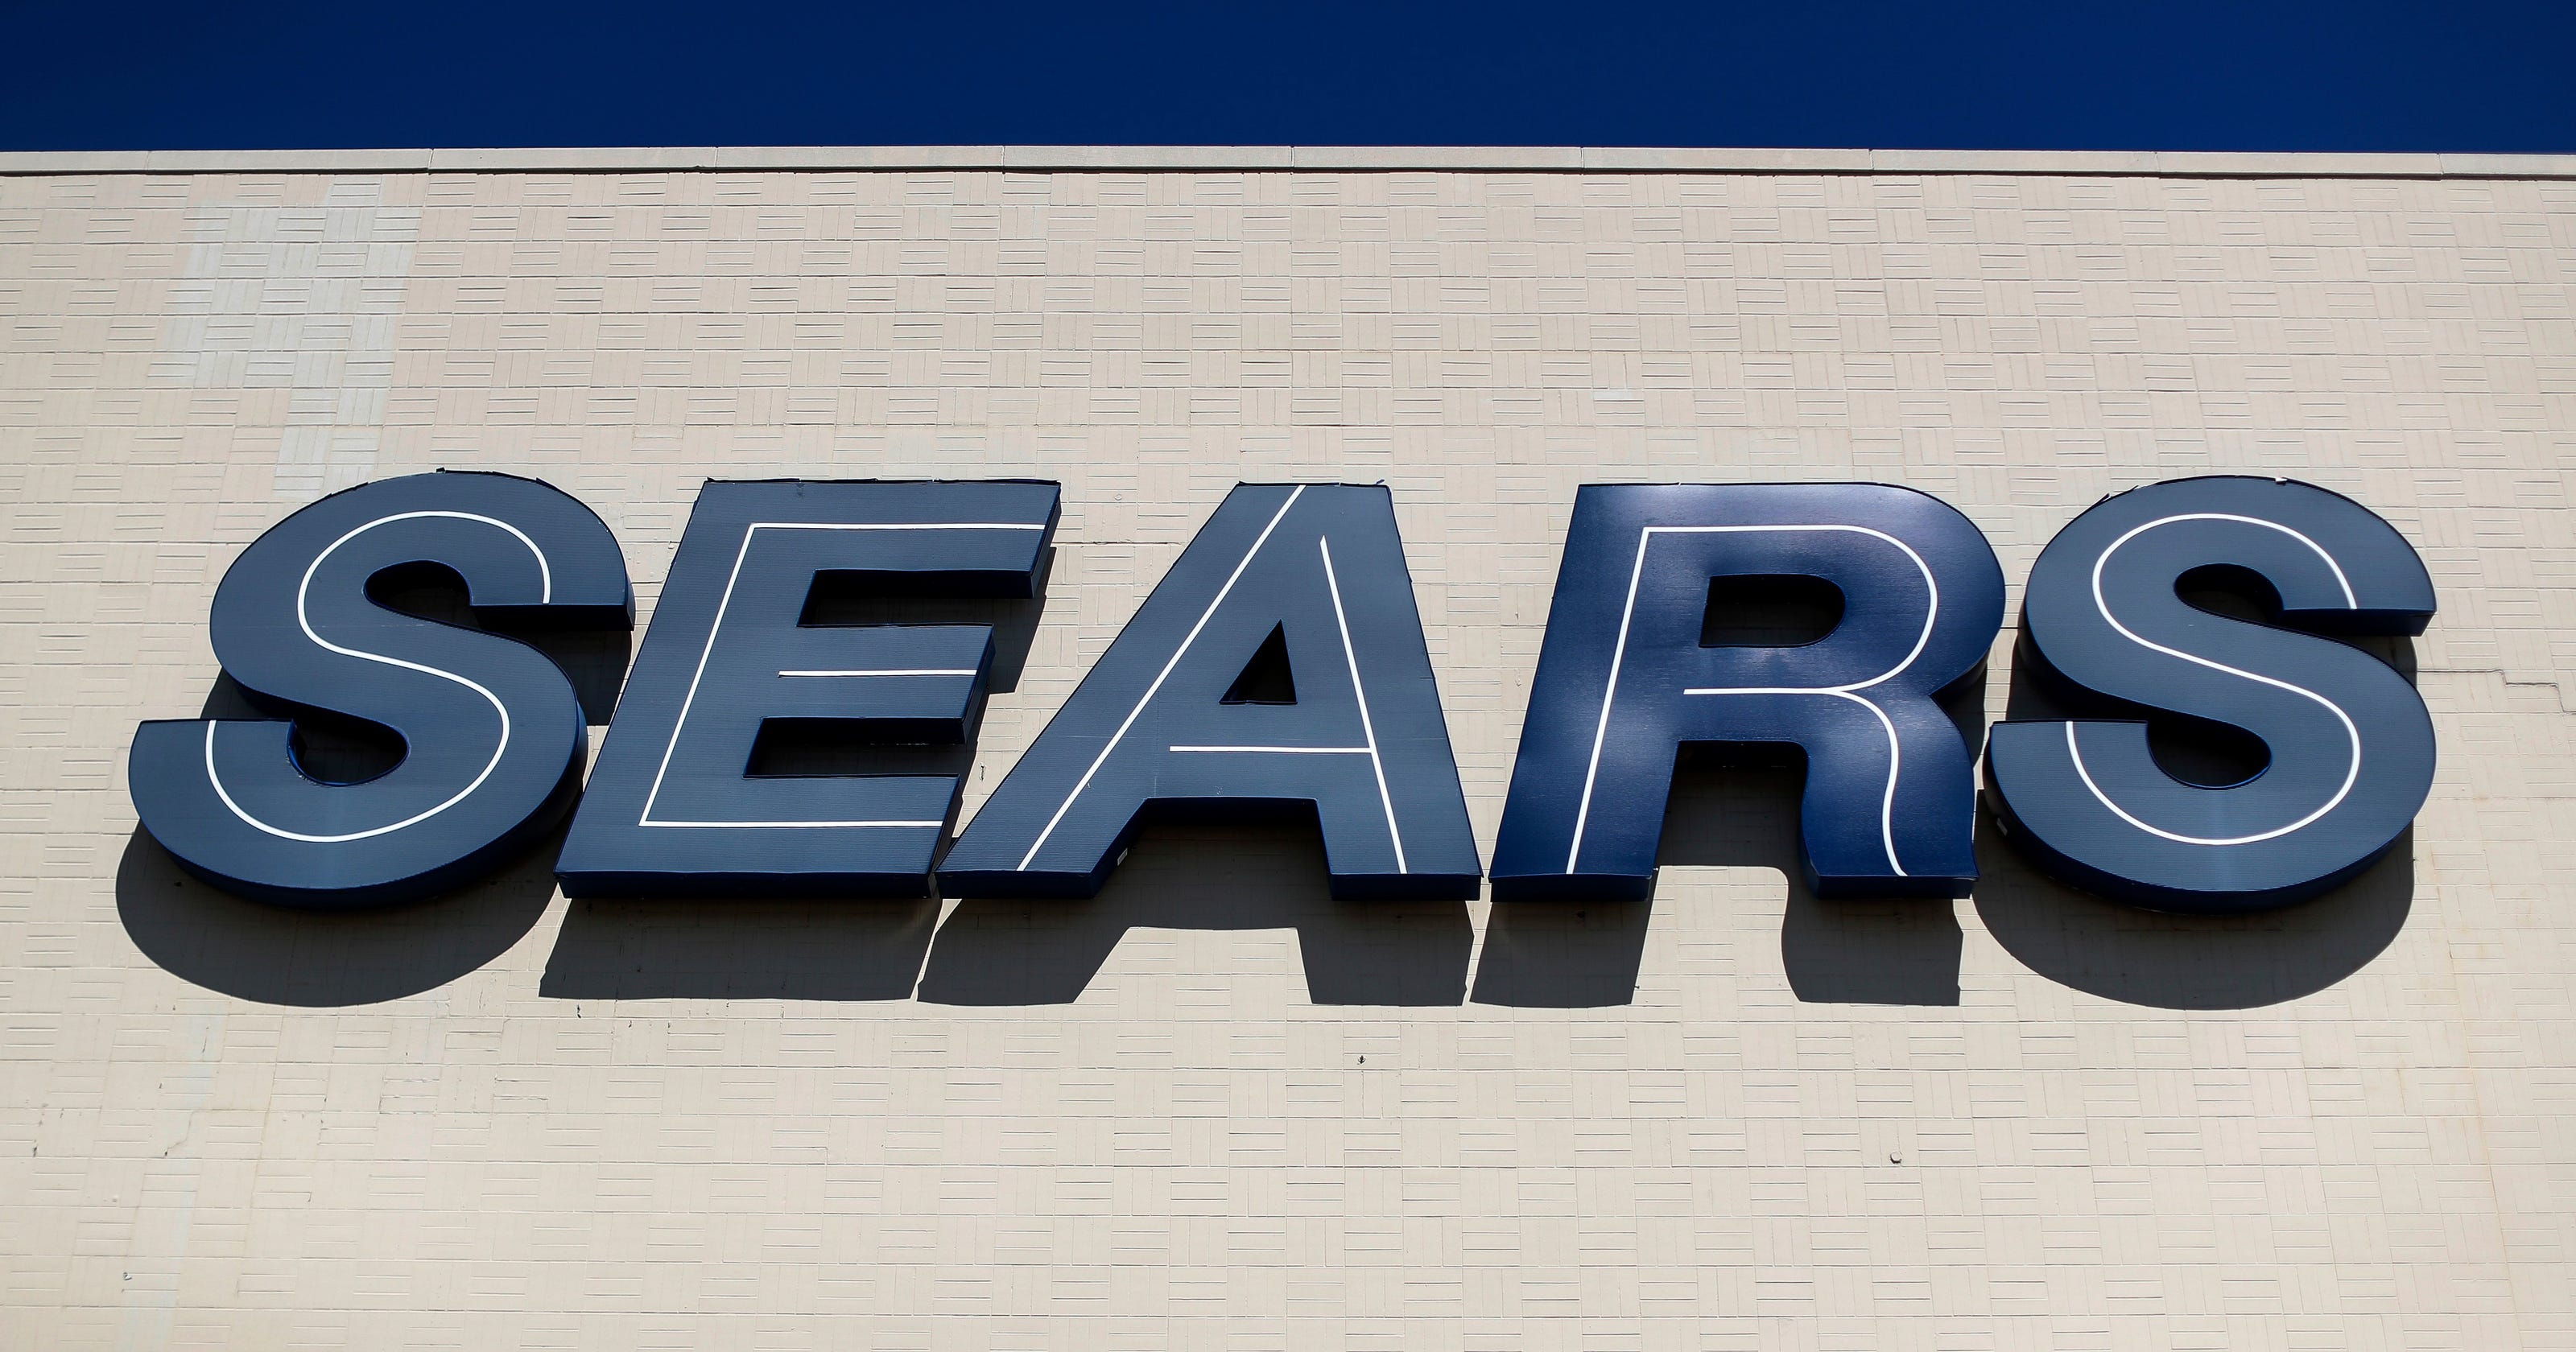 Frandor Sears saved in latest round of closures